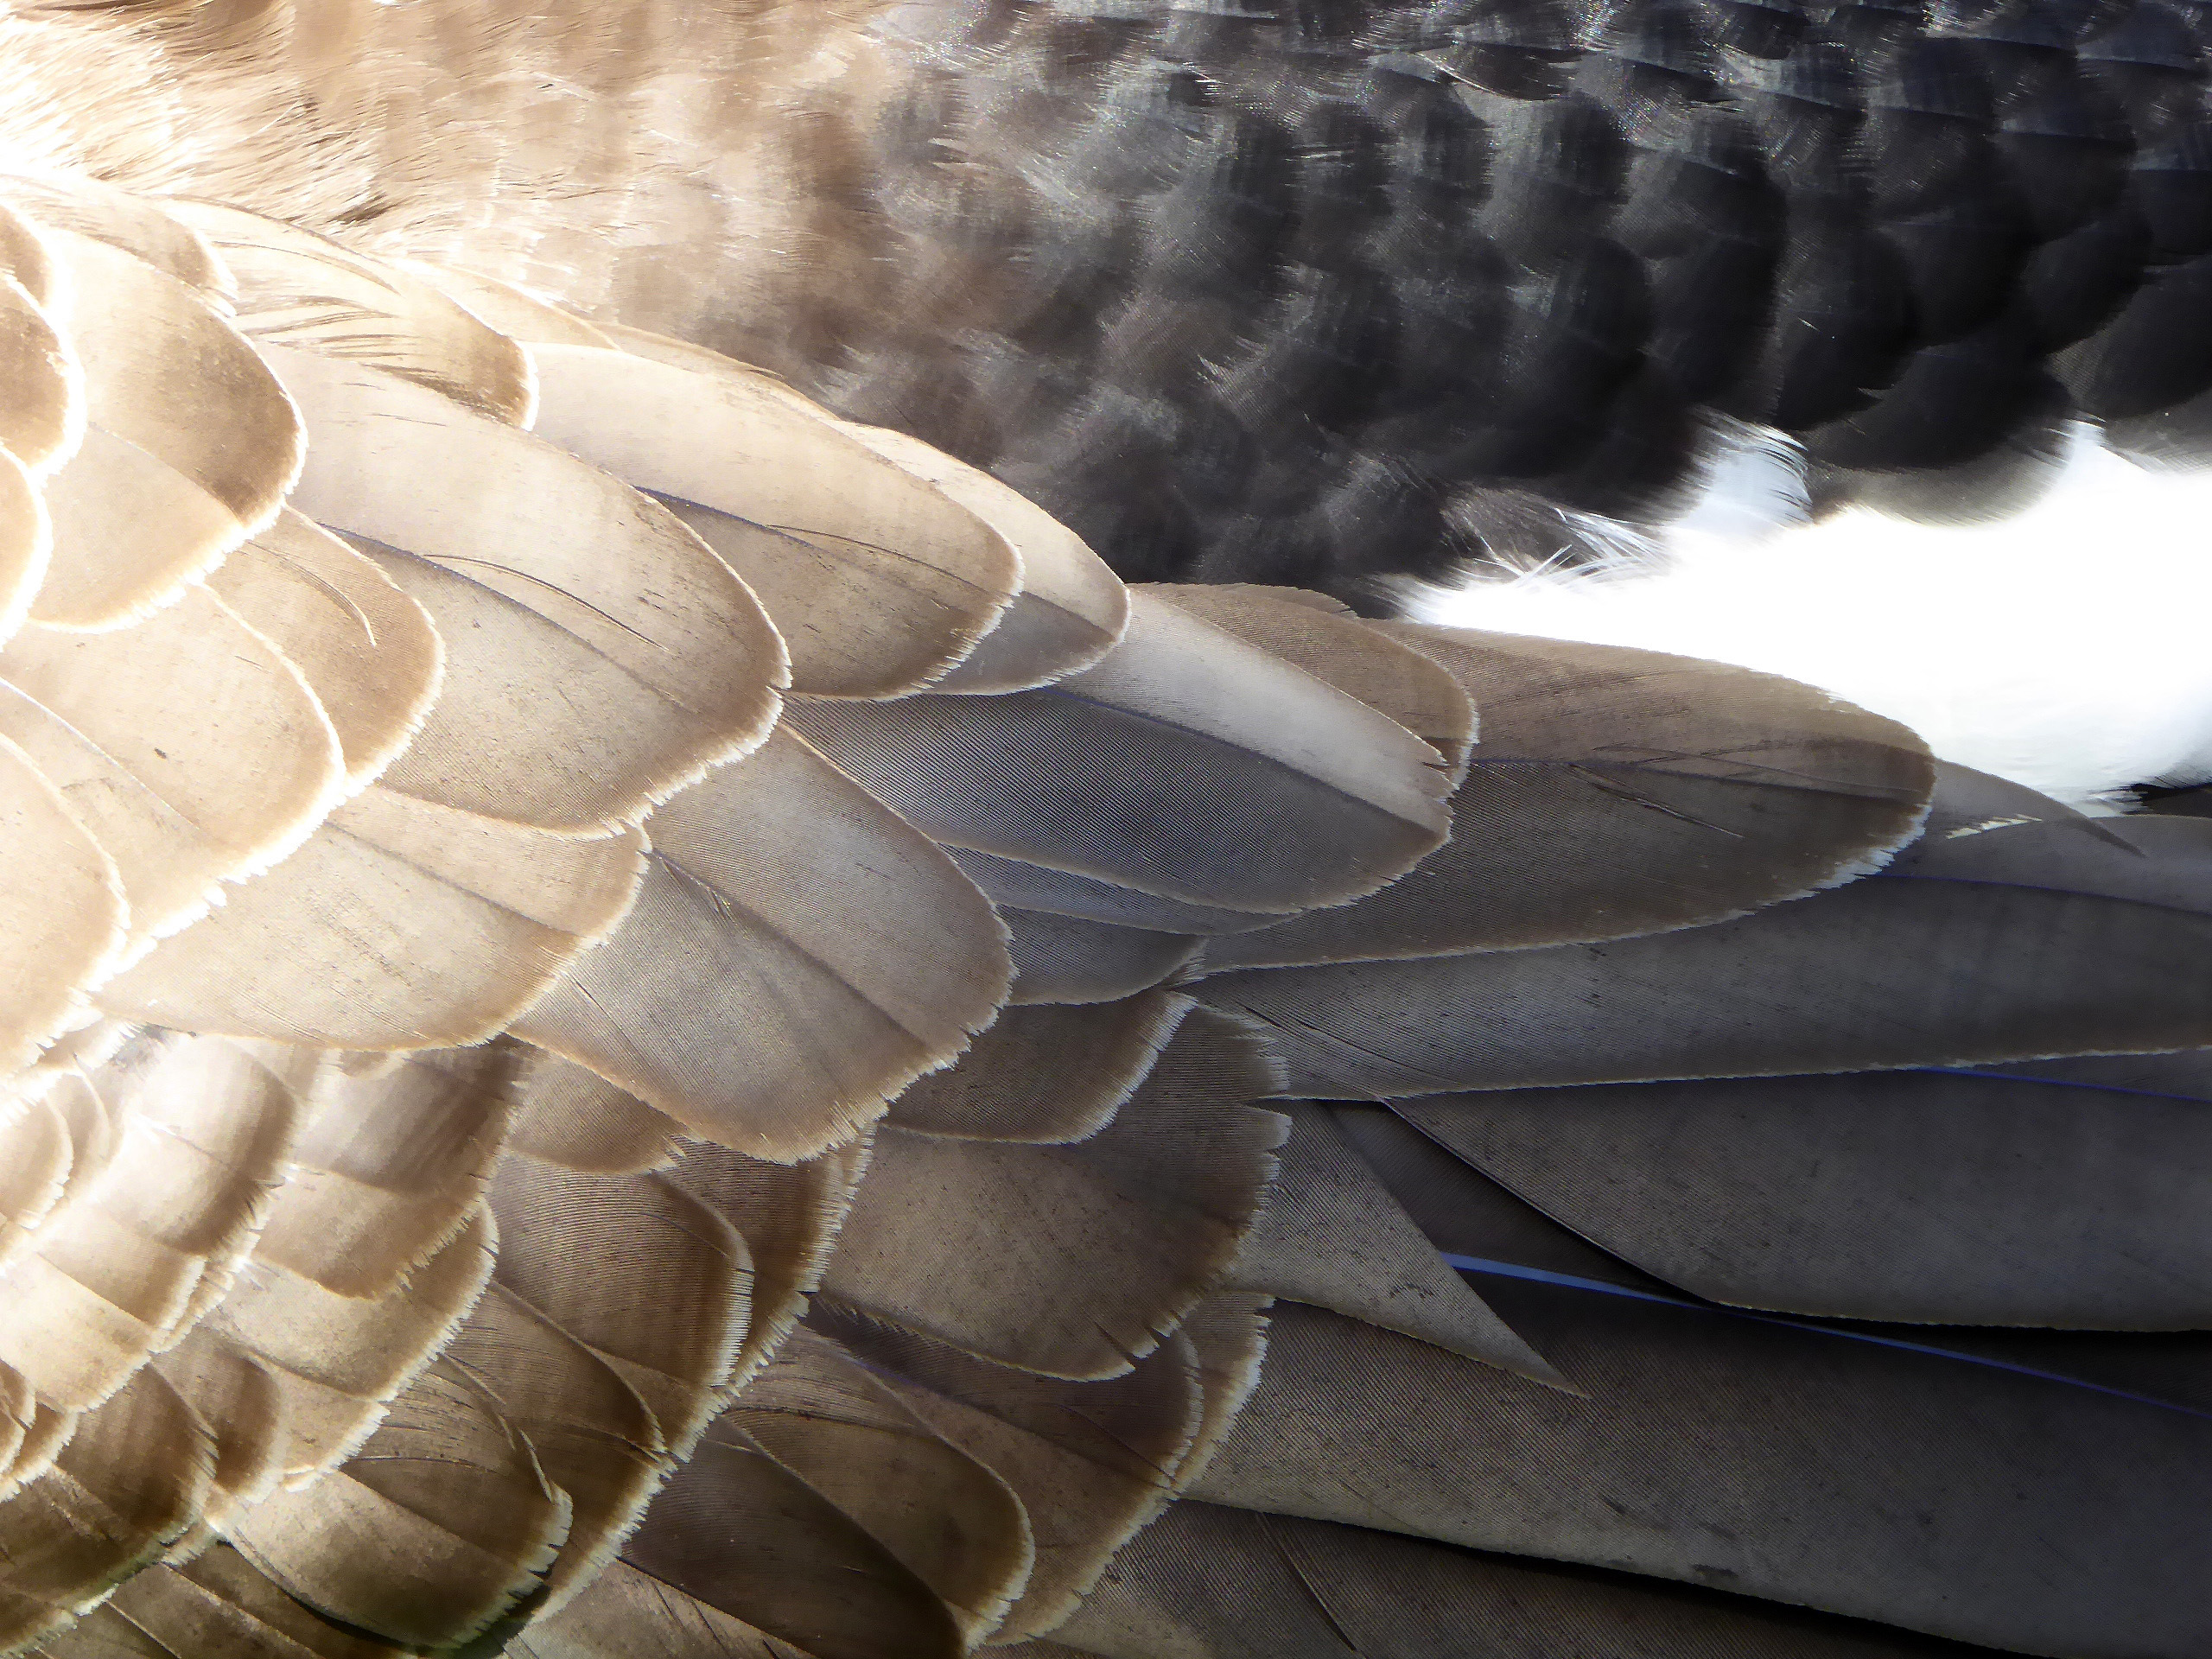 Feathers of a Canada Goose